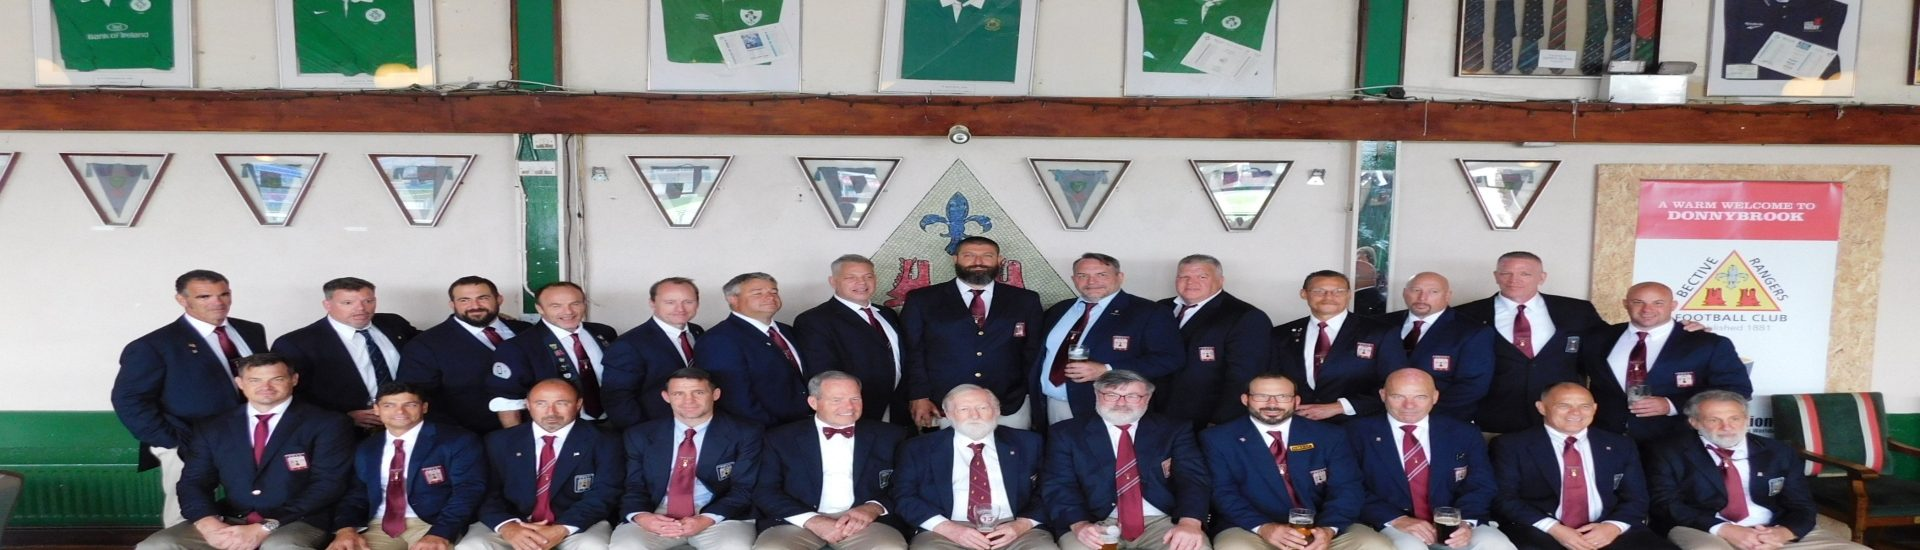 Connecticut Grey RFC - Rugby Tours To Ireland, Irish Rugby Tours